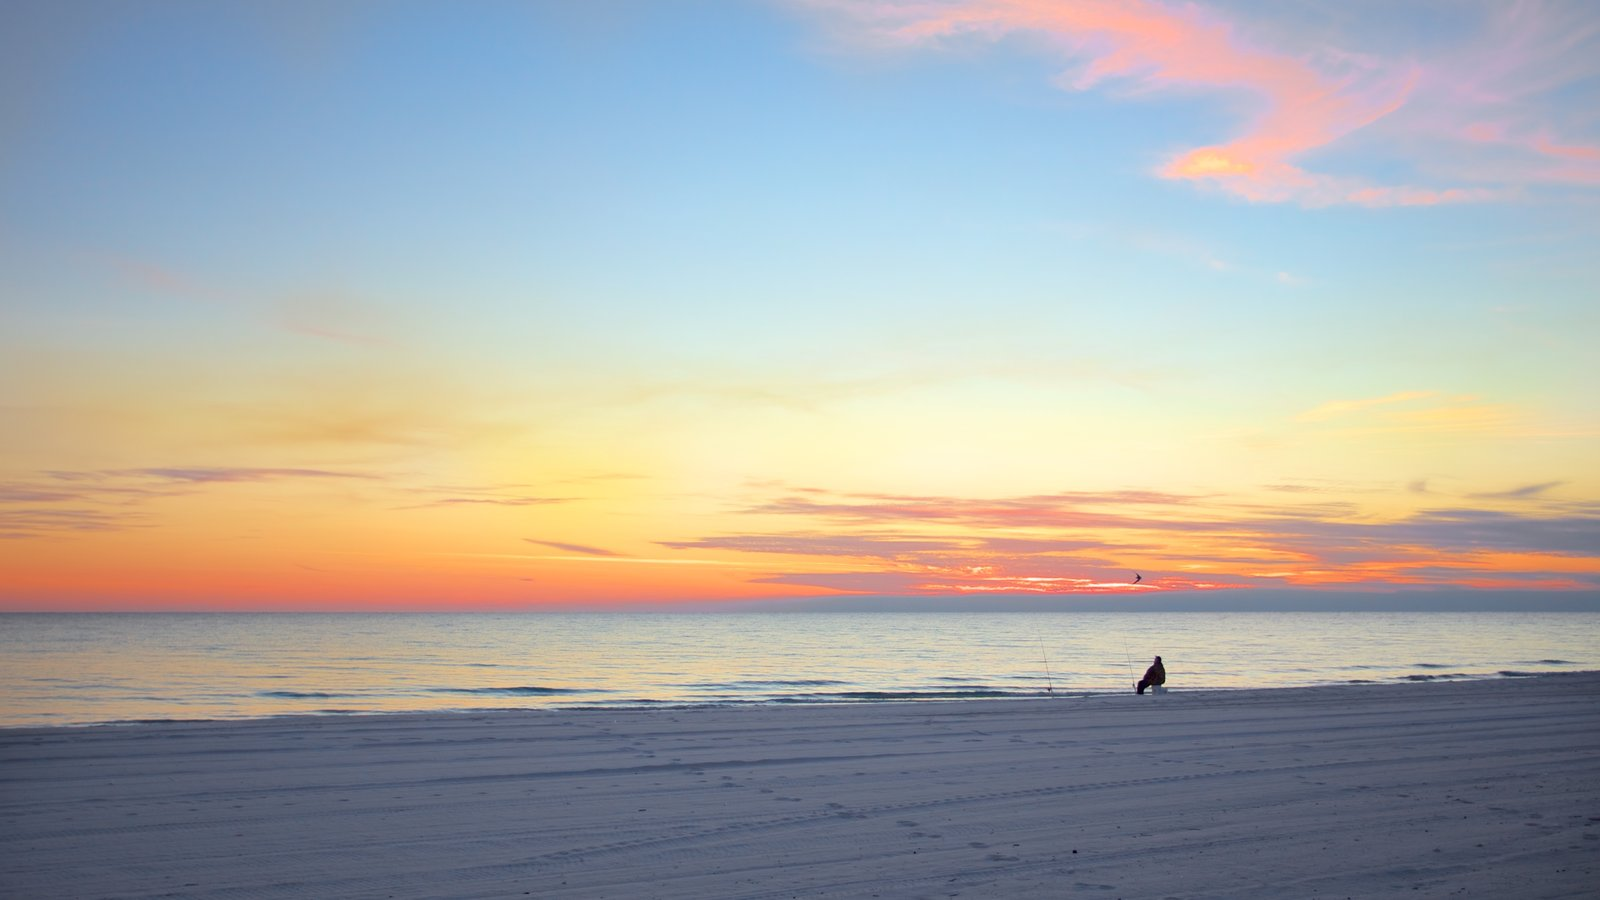 Panama City featuring a beach and a sunset